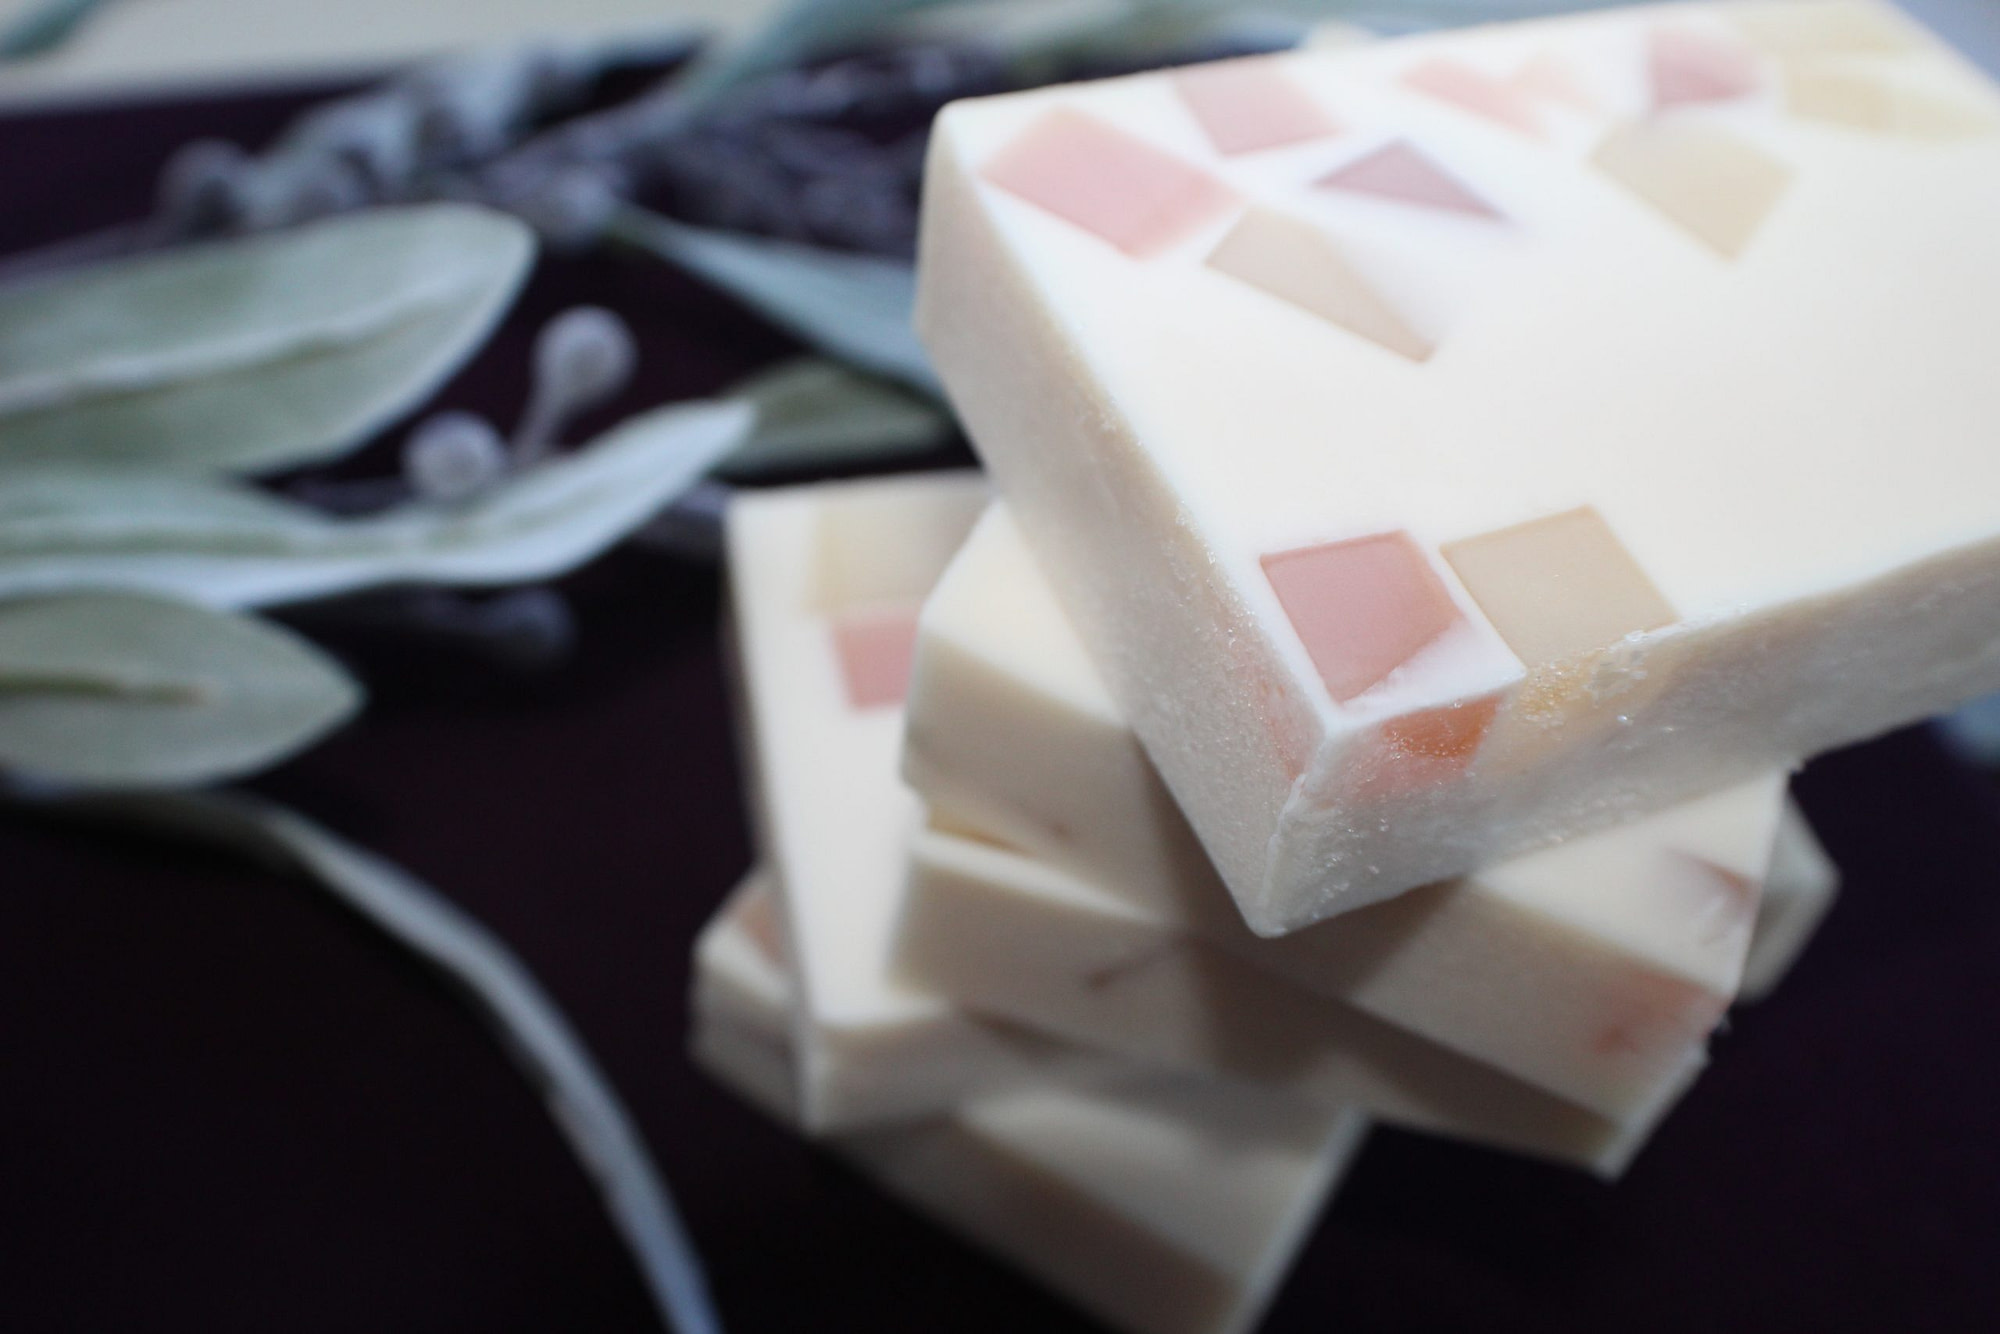 Hydrate Dry Skin With Goat Milk Soap